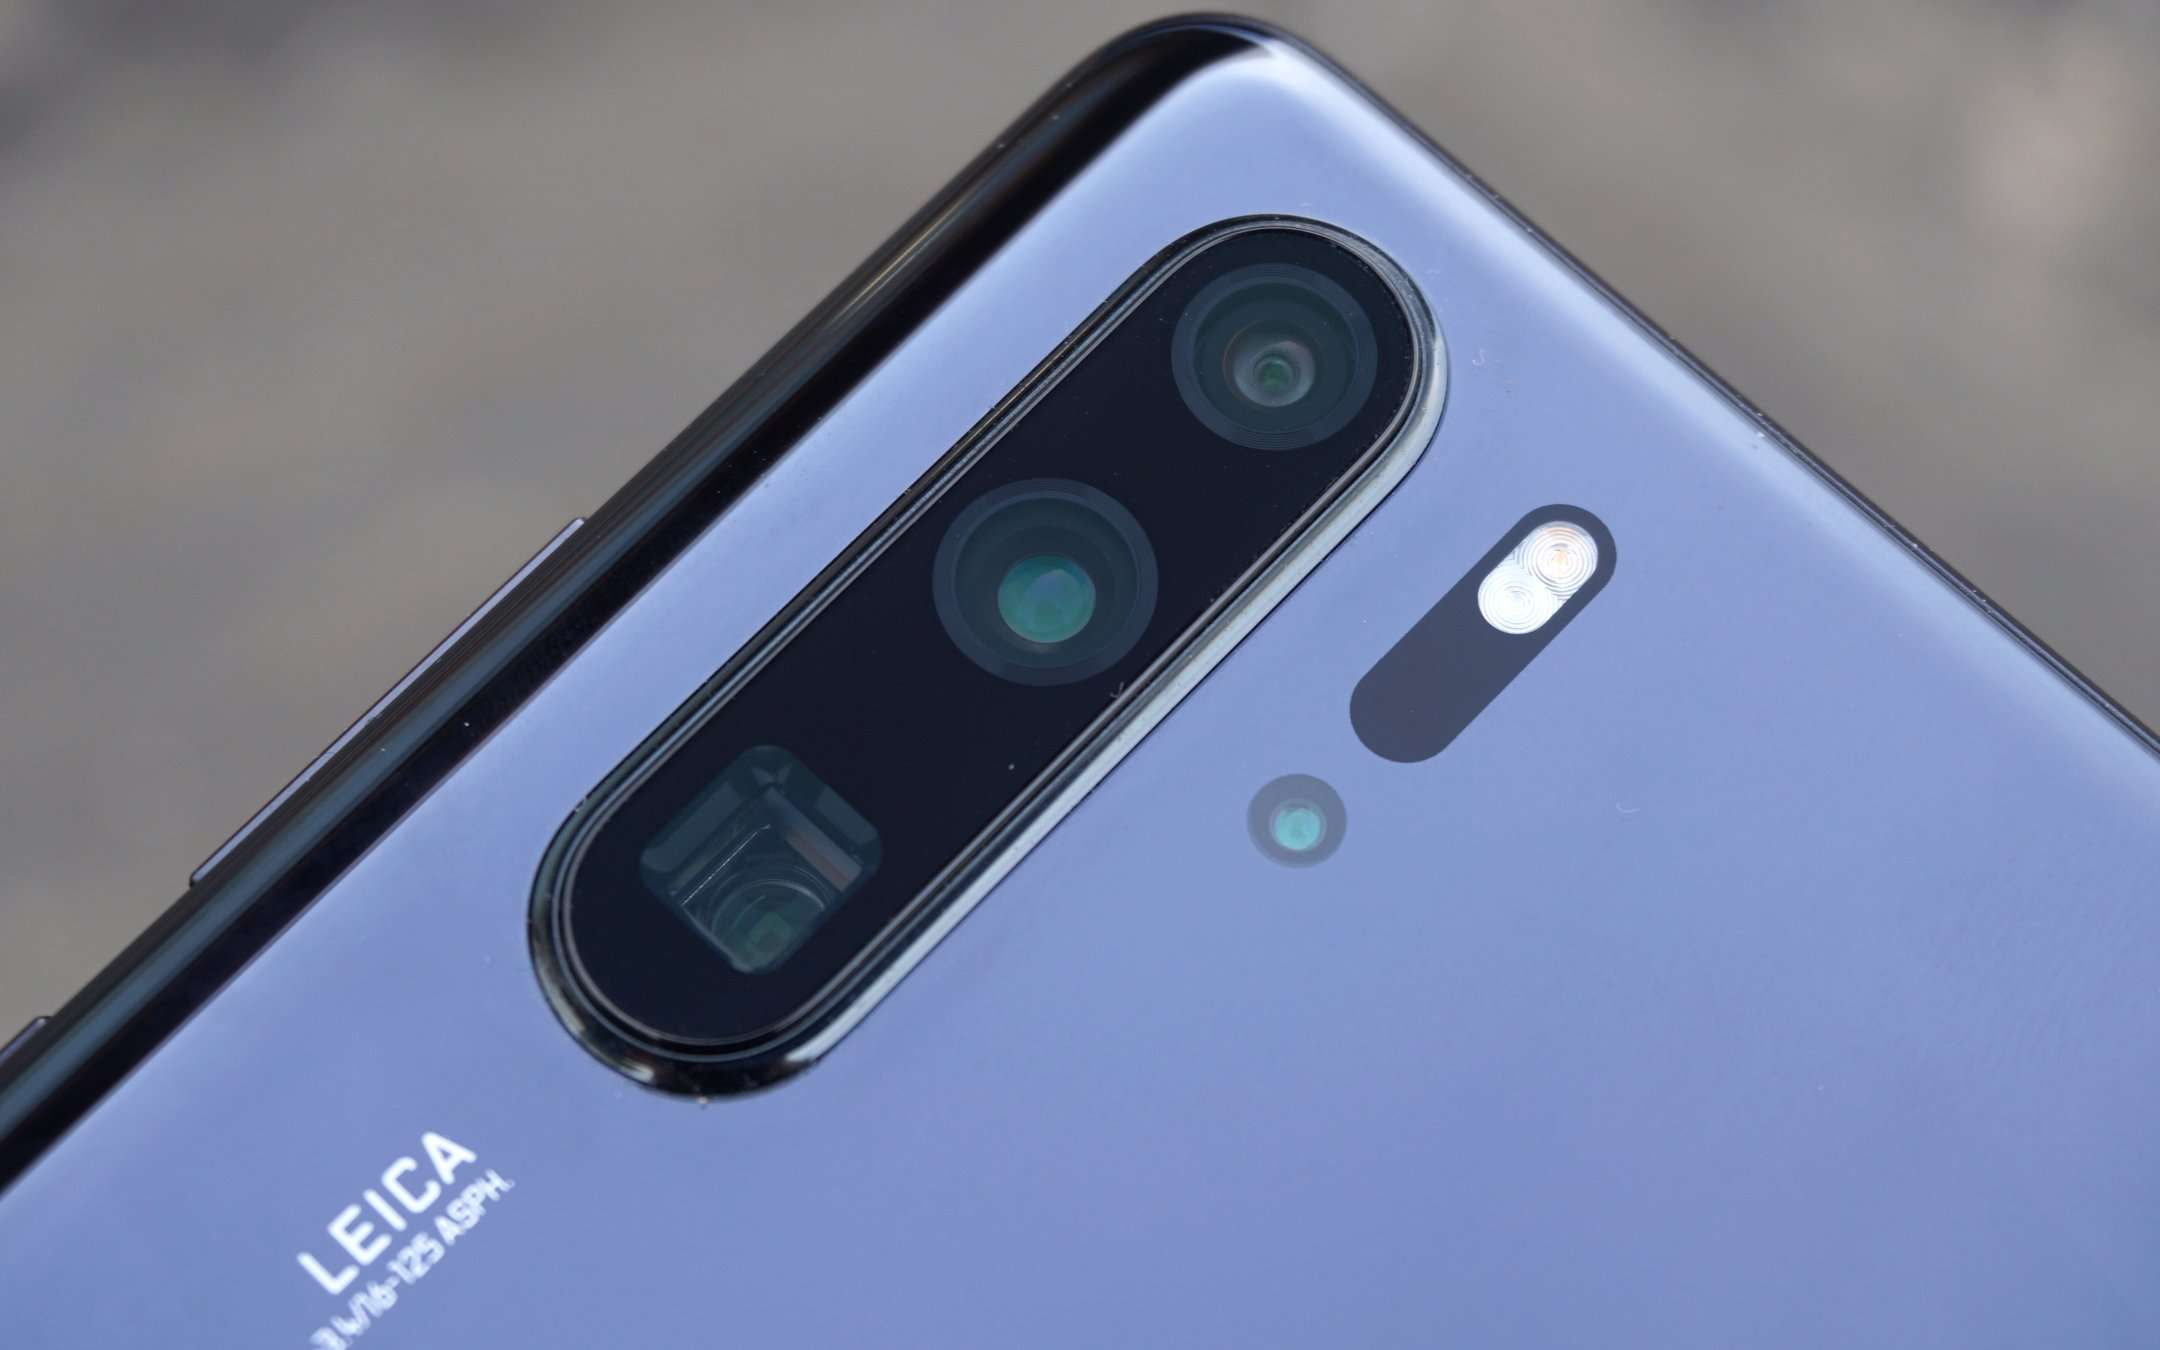 Google toglie supporto ufficiale Android a Huawei